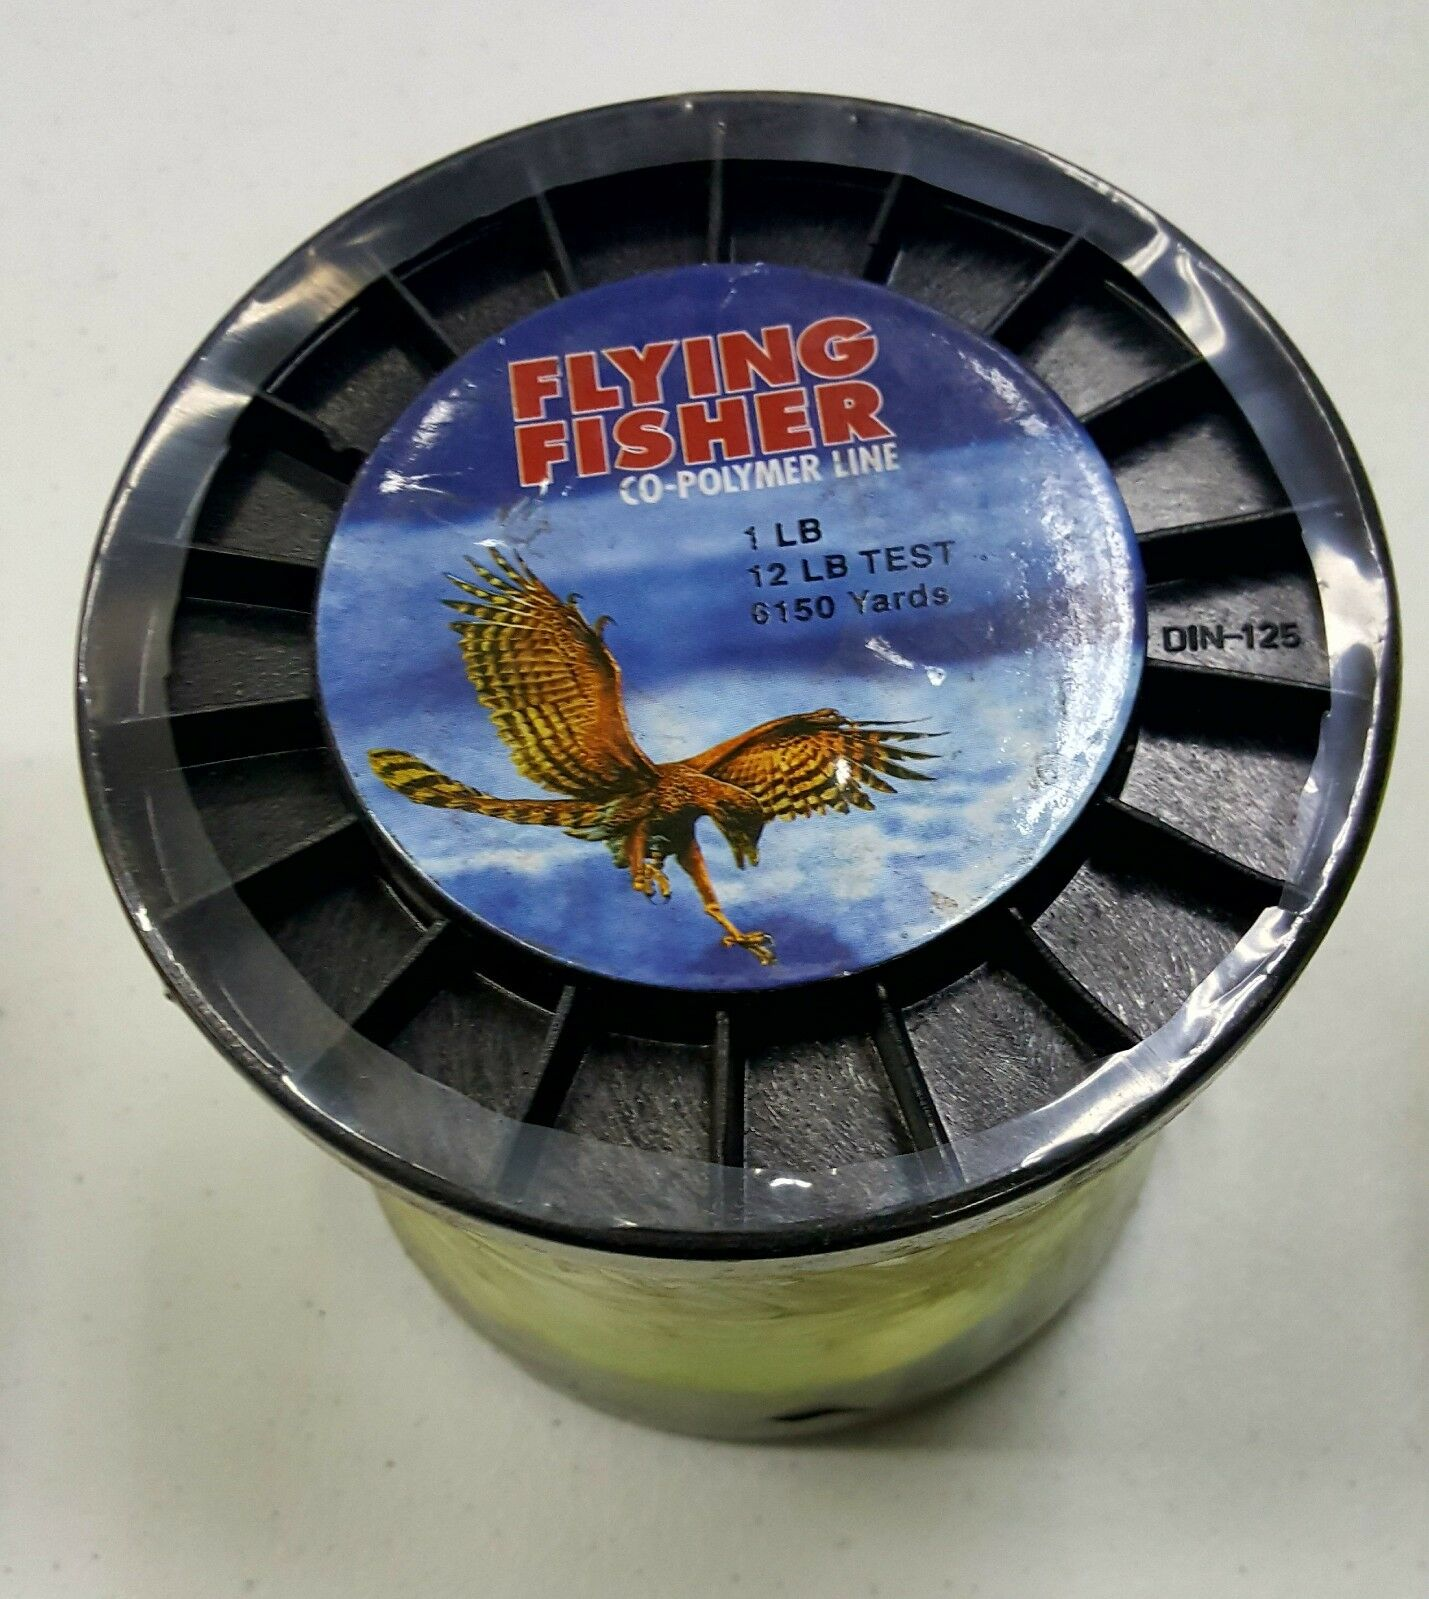 12  Lb. 6150 Yards Flying Fisher Copolymer Fishing Line  clearance up to 70%